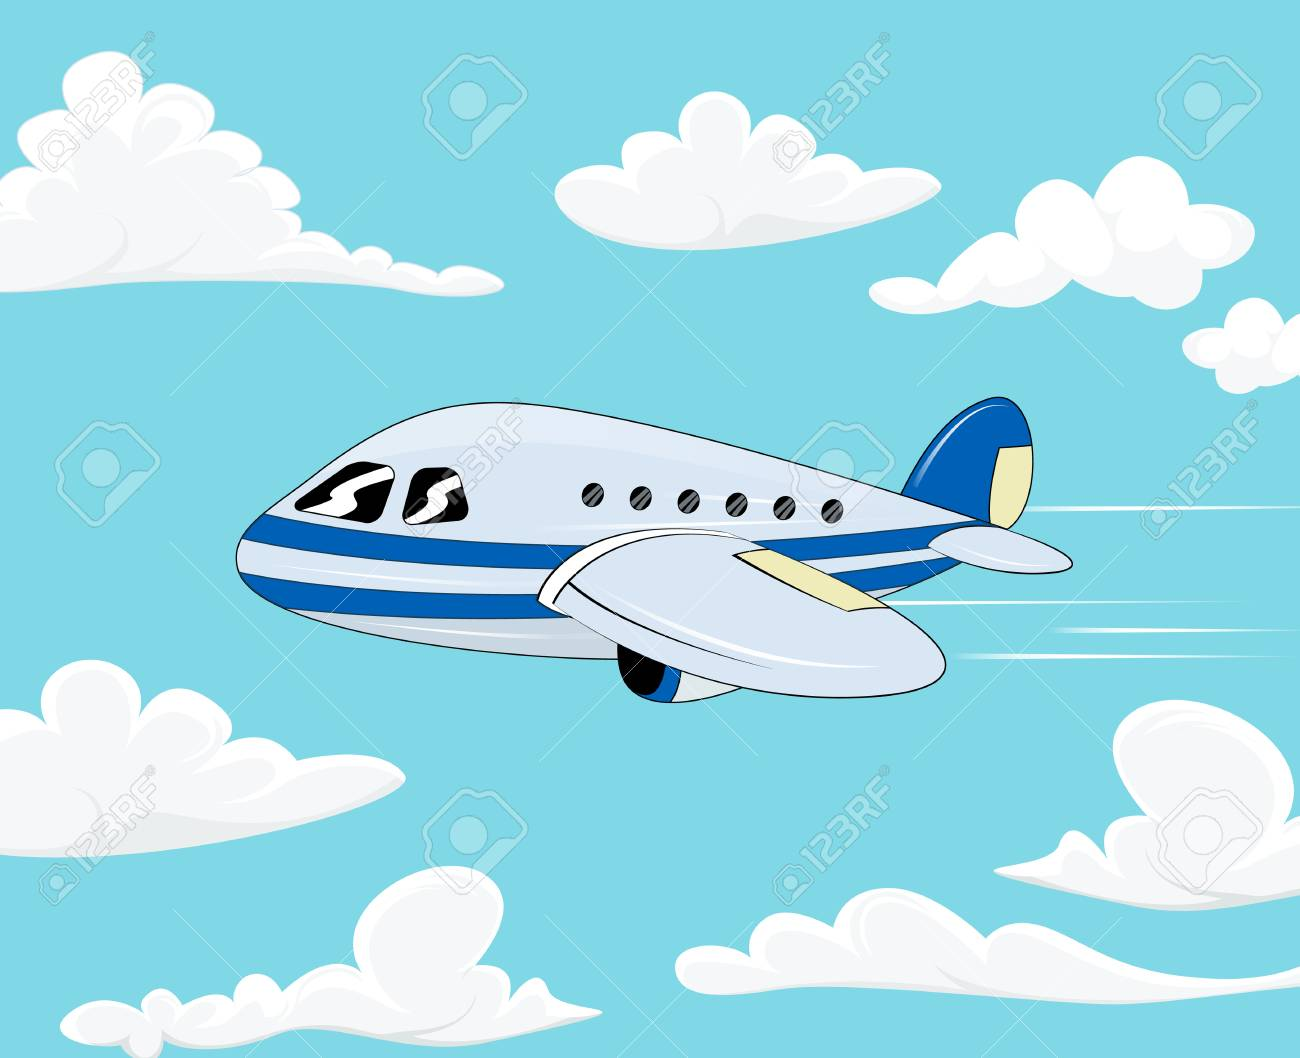 Flight Of The Plane In The Cloudy Sky Cartoon Passenger Airplane